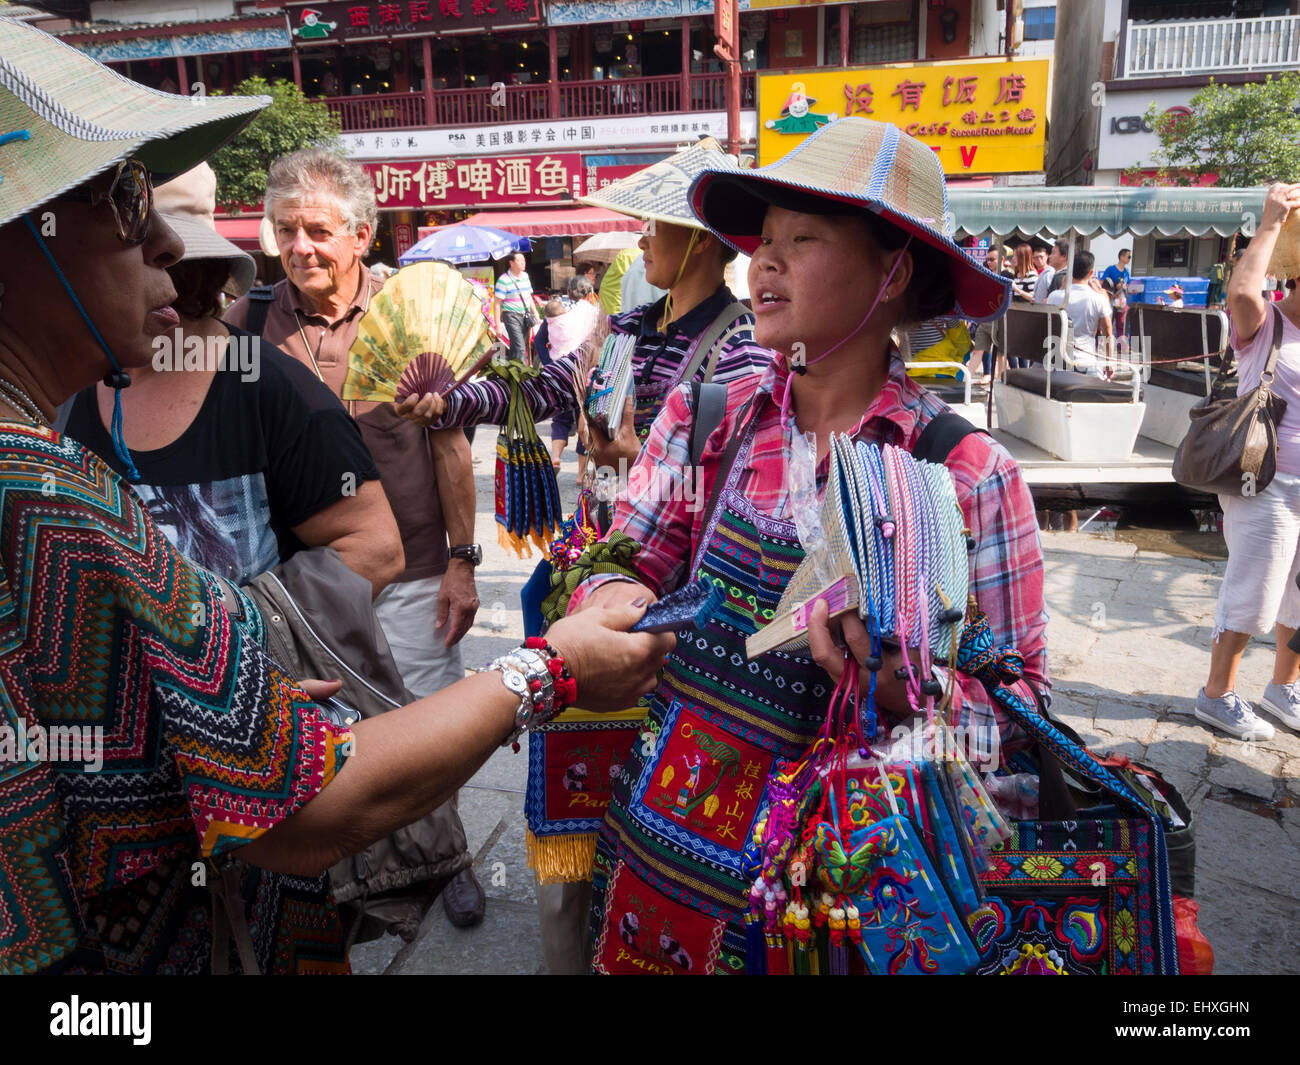 Chinese woman selling hats and other merchandise on the streets of Yangshuo, China Stock Photo